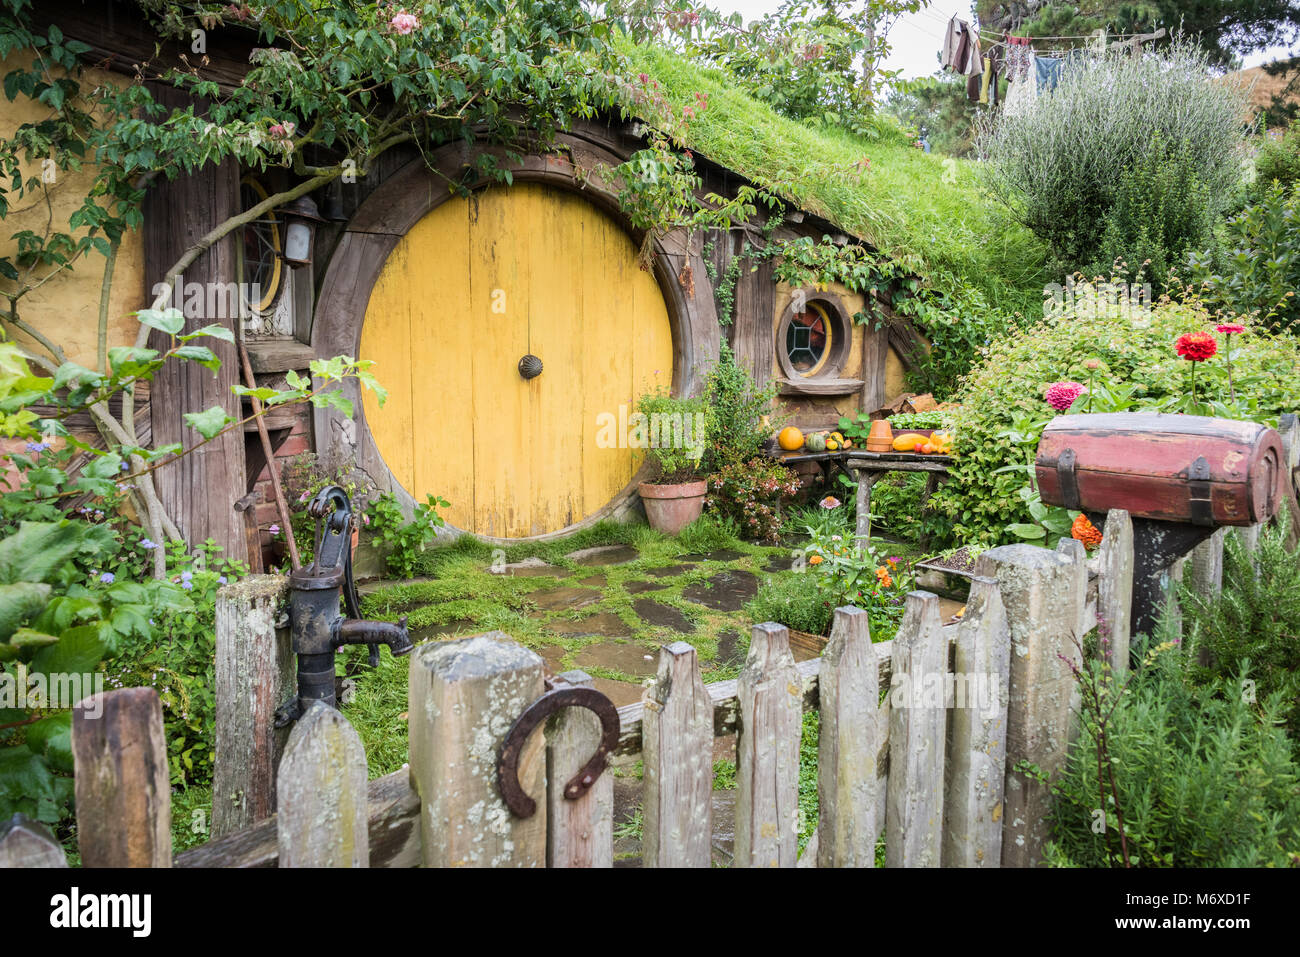 hobbit haus hobbiton movie matamata north island neuseeland stockfoto bild 176372603 alamy. Black Bedroom Furniture Sets. Home Design Ideas